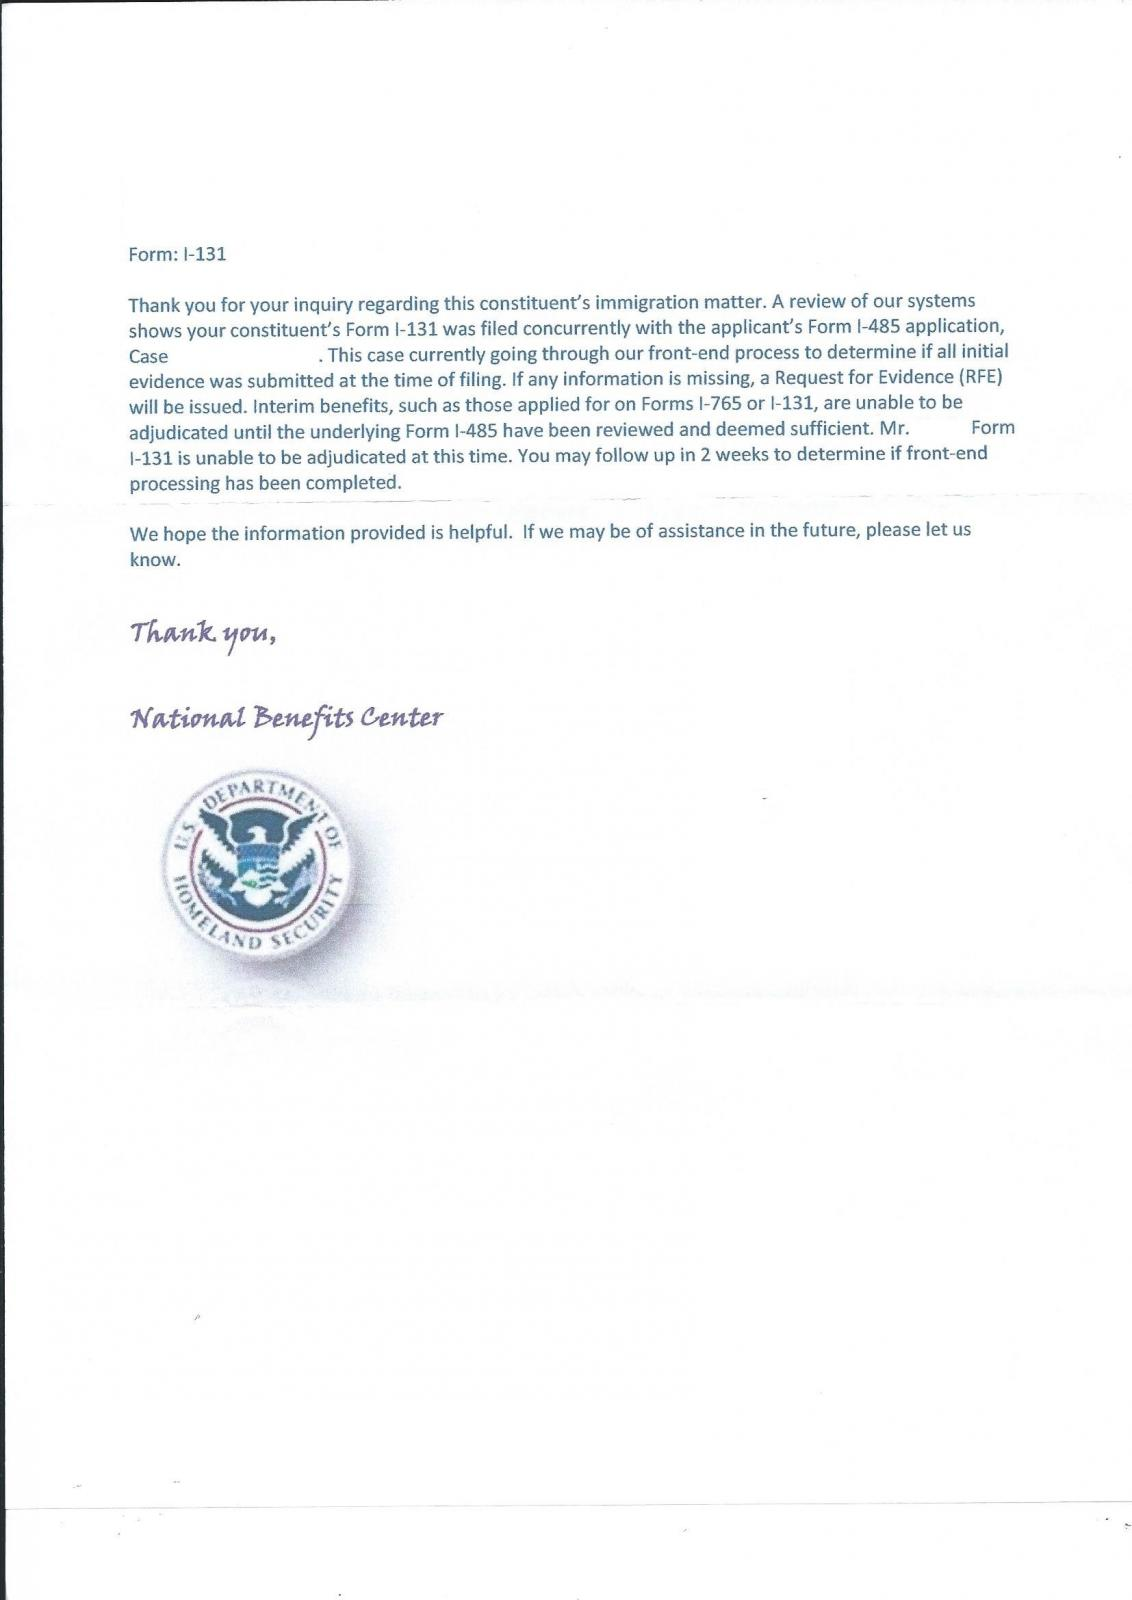 Contacted Congressman Regarding I 131 This Is The Response From